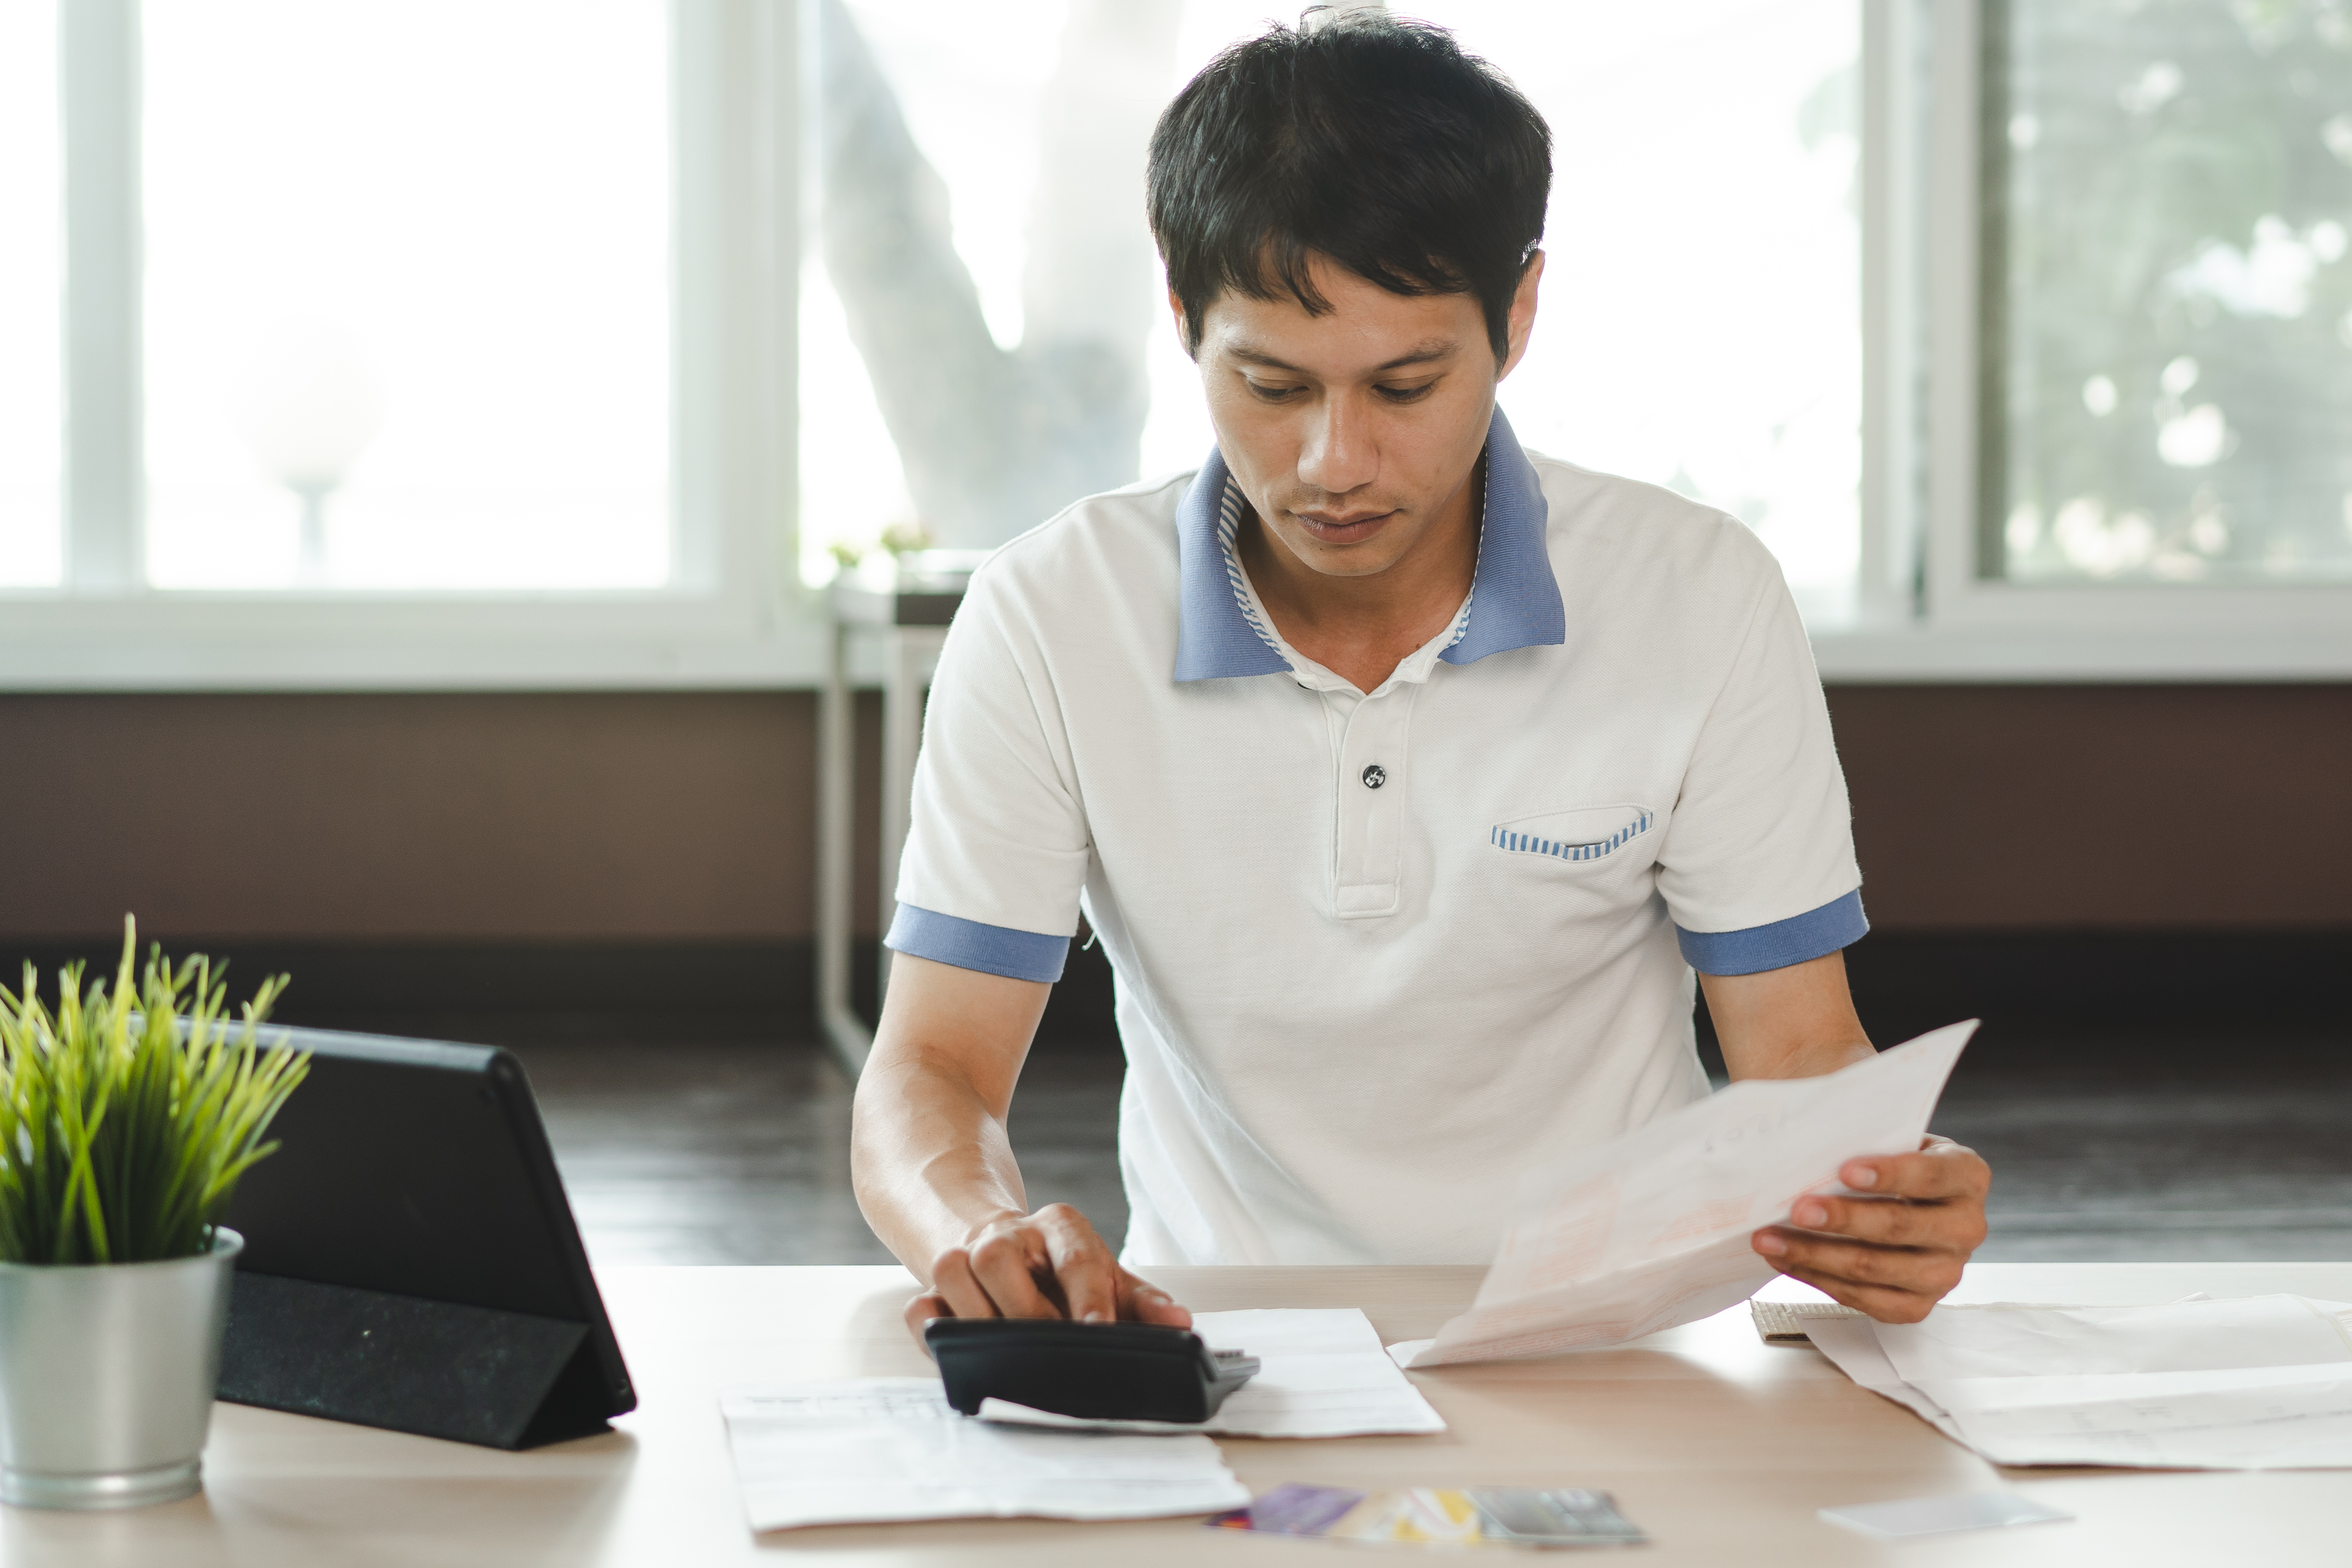 Stressed man calculating wealth management